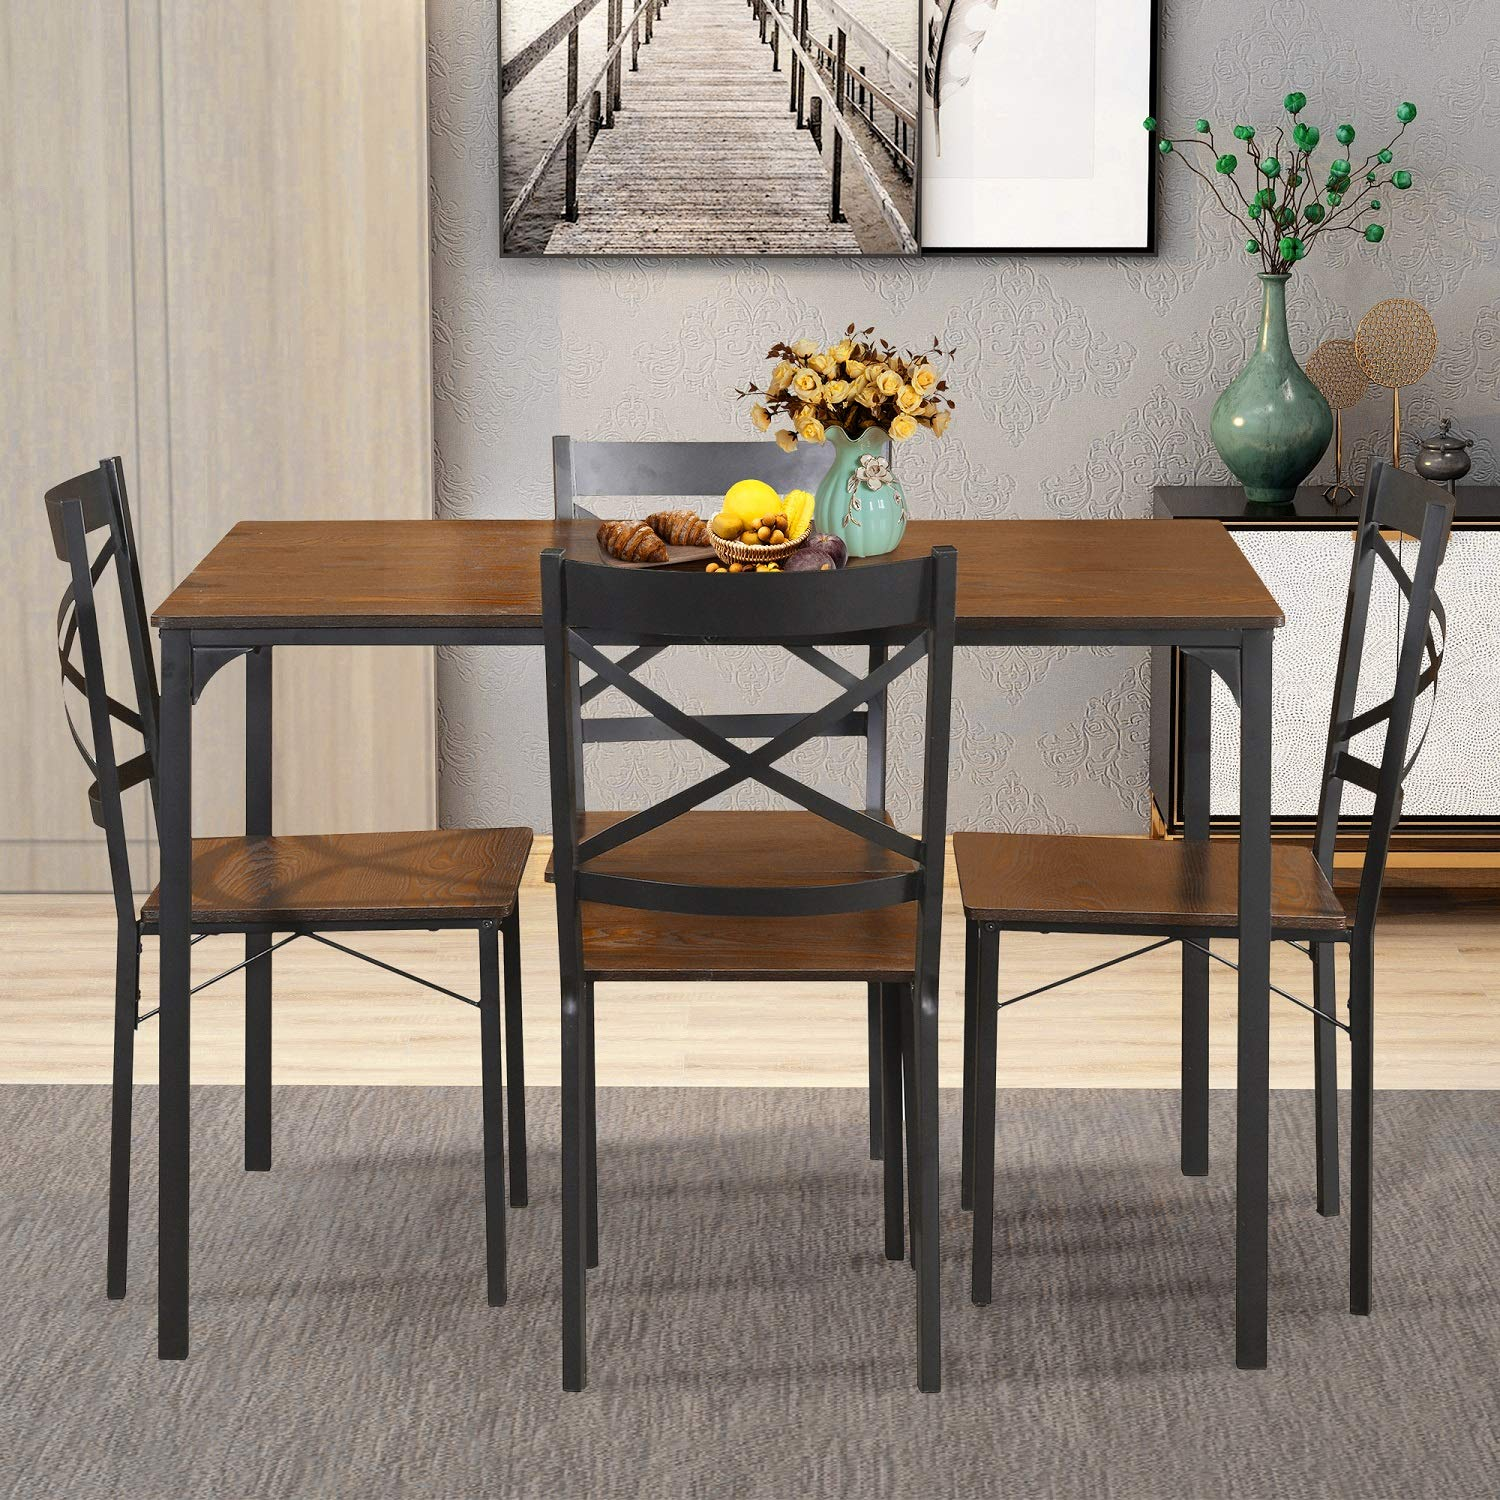 Lentia 5 Piece Dining Table Set Vintage Wood Top Home Kitchen Table With 4 Chairs Wood And Metal Dining Room Breakfast Modern Furniture Dark Brown Amazon In Home Kitchen